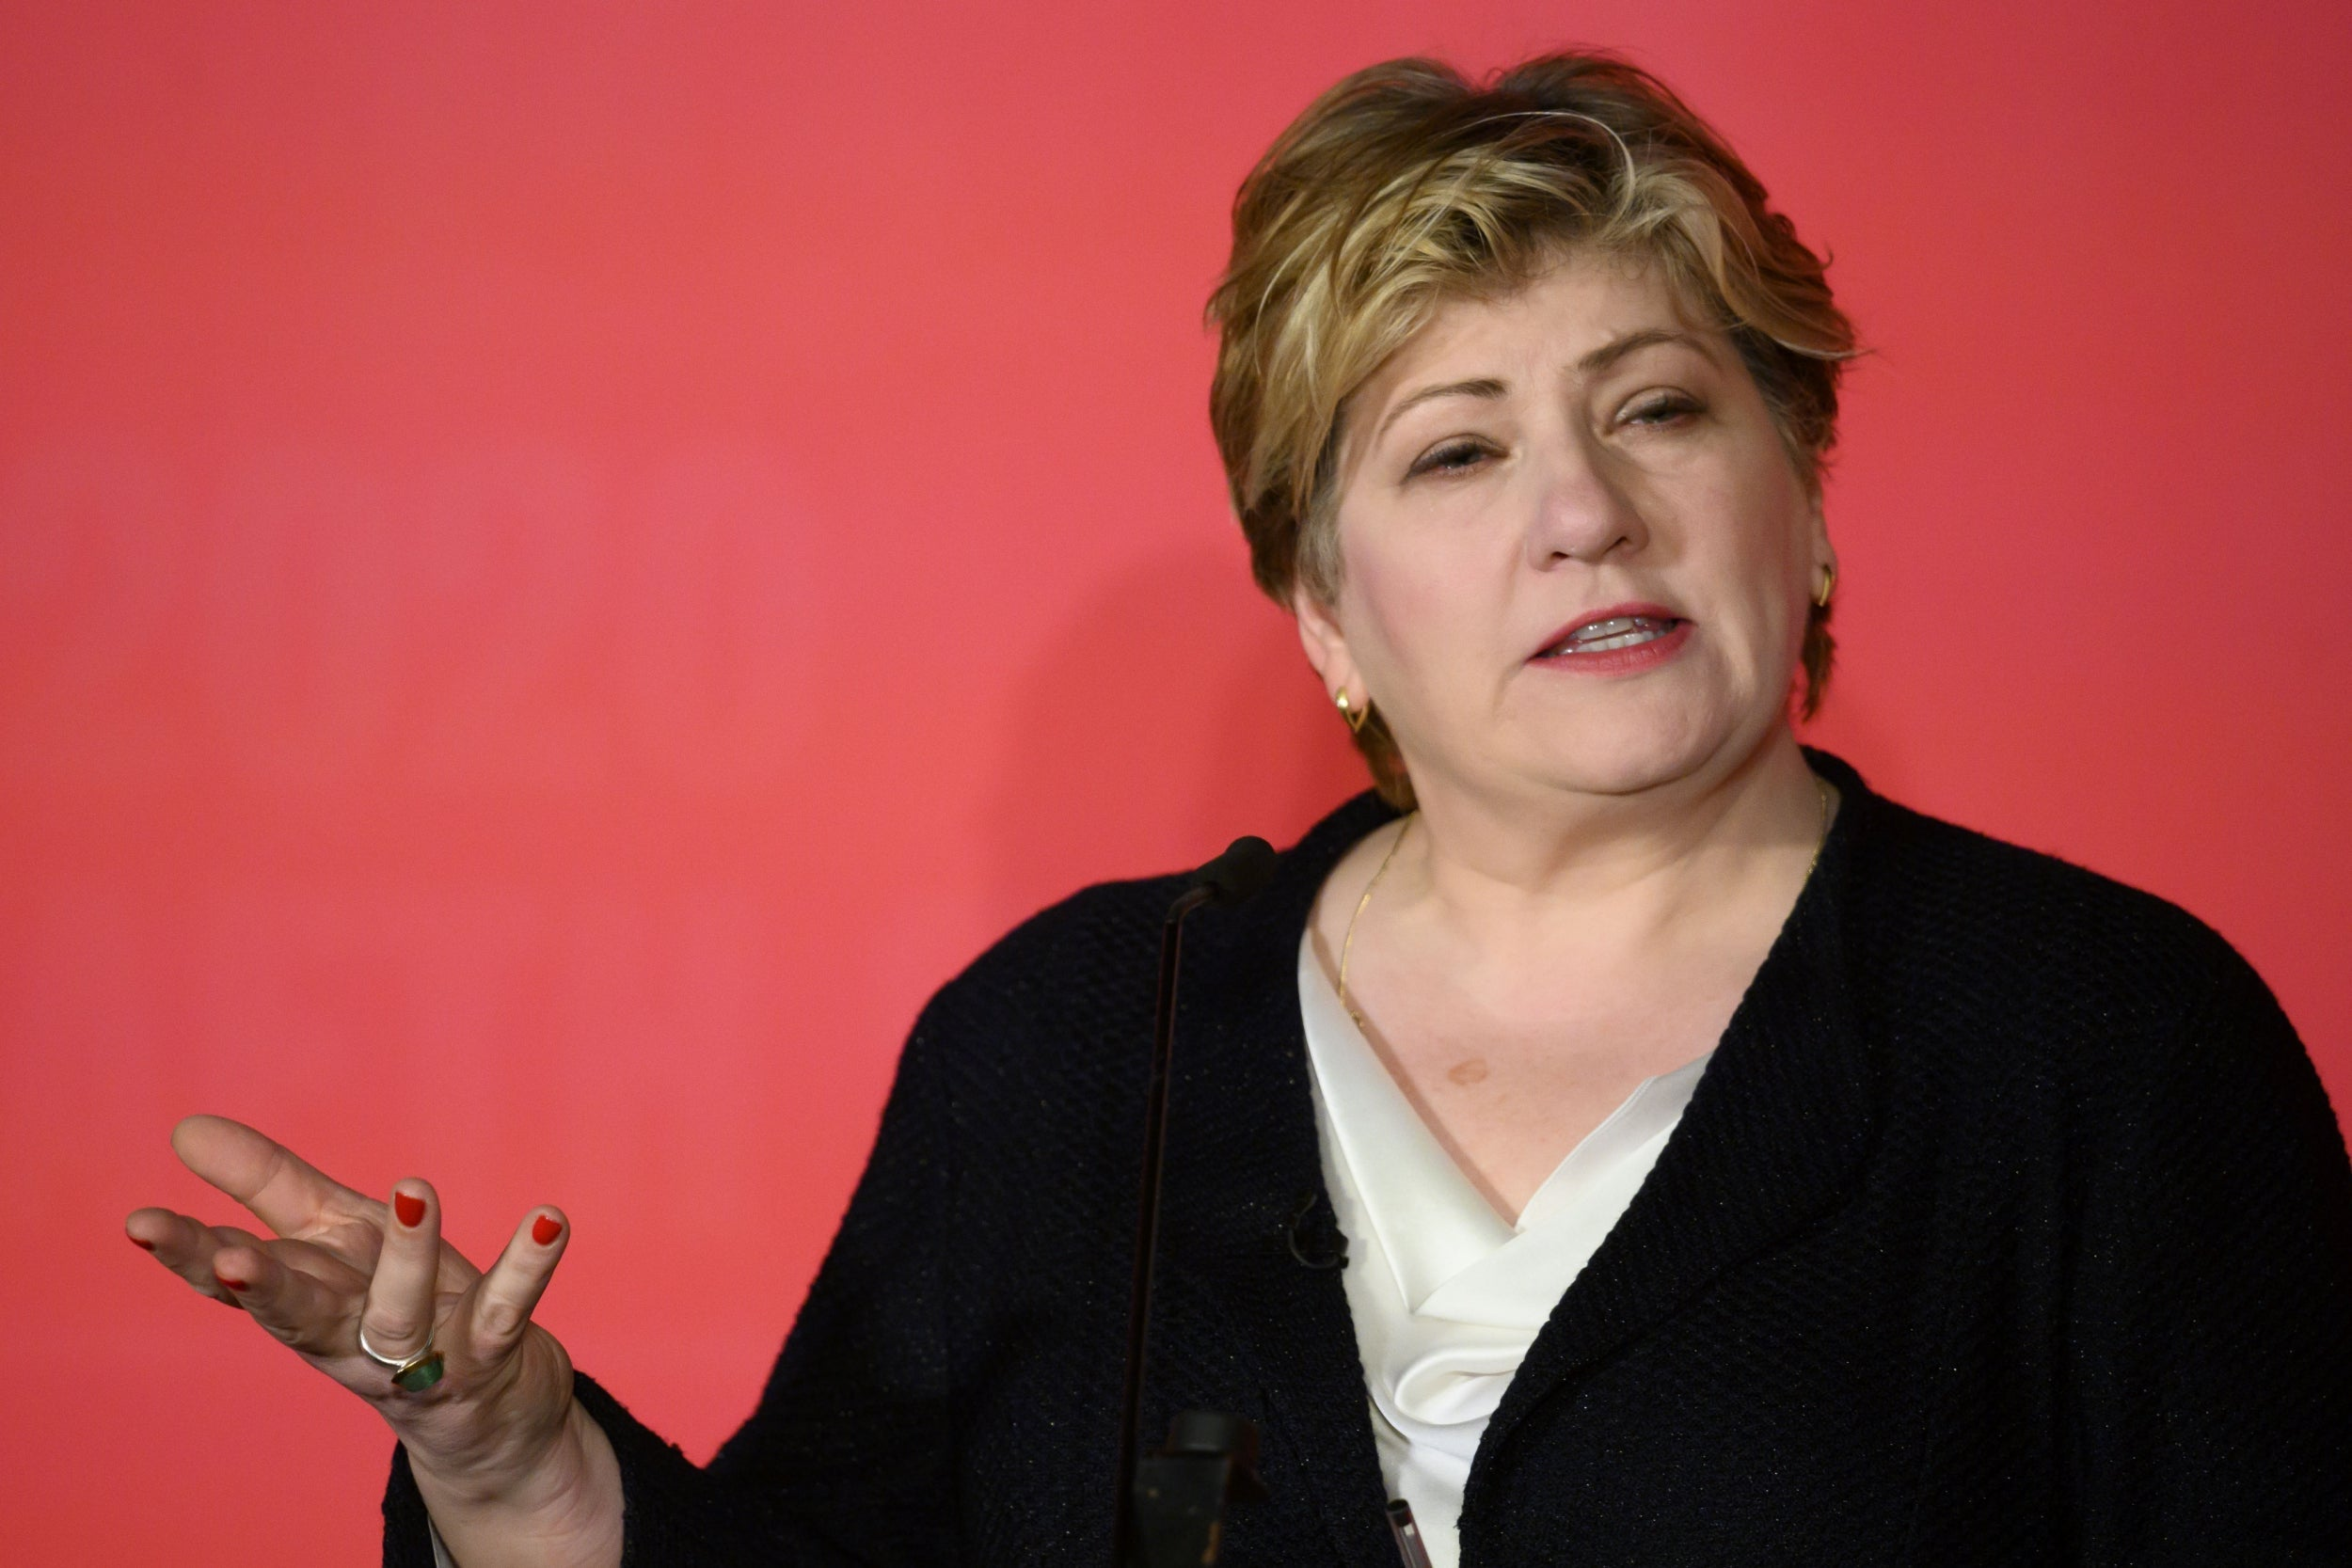 Labour leadership: Emily Thornberry tells members to 'get on with it' and nominate her